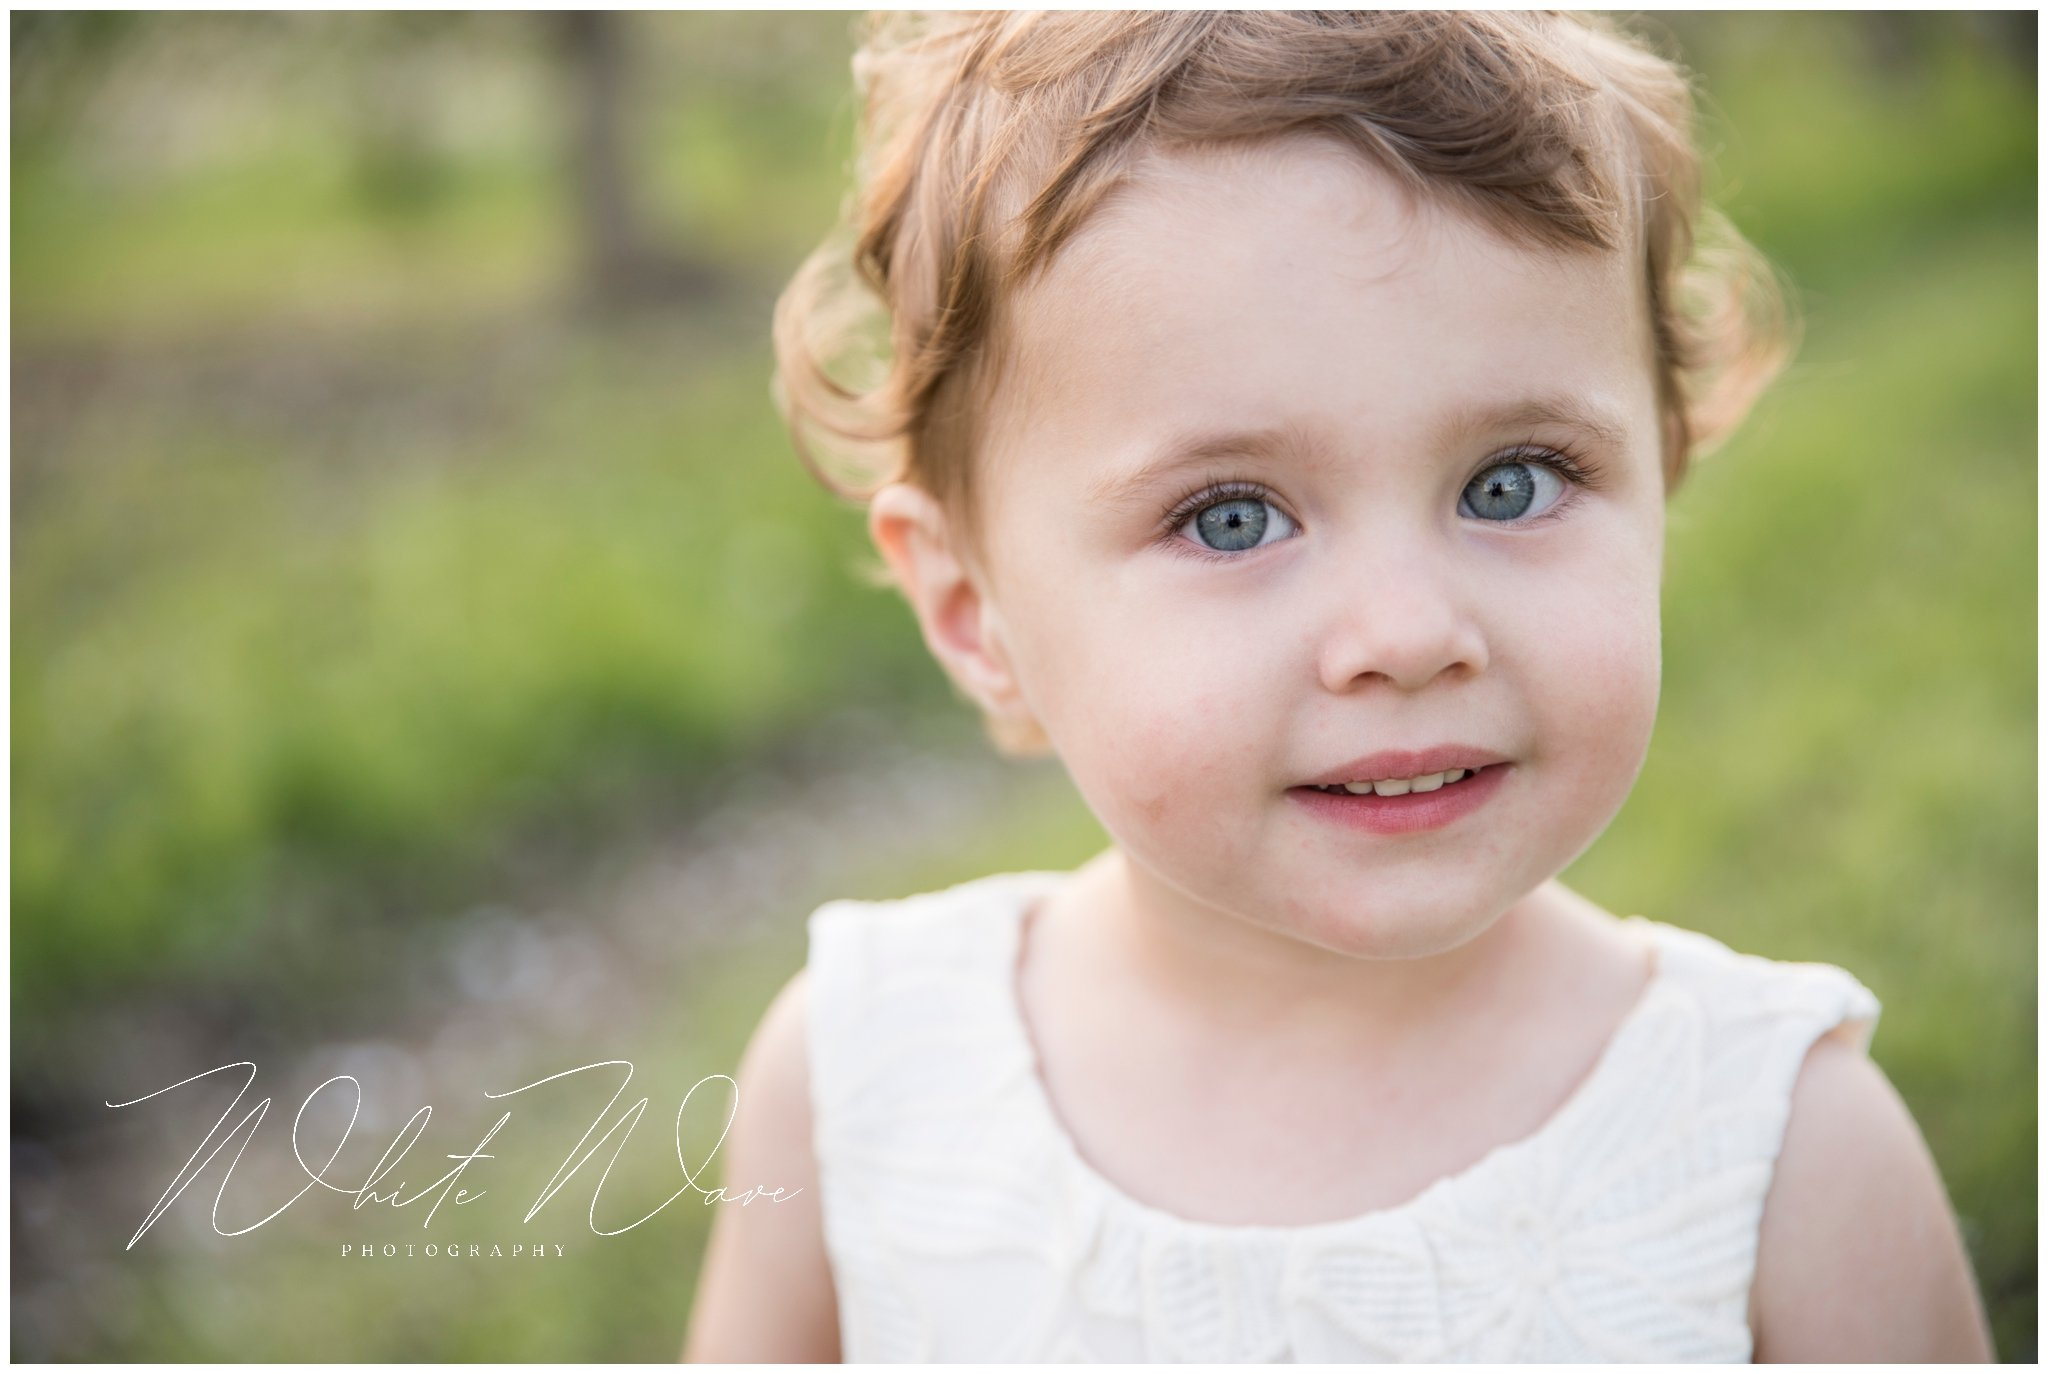 your family photographer Jennie Bishop shares tips on what to wear for your spring session